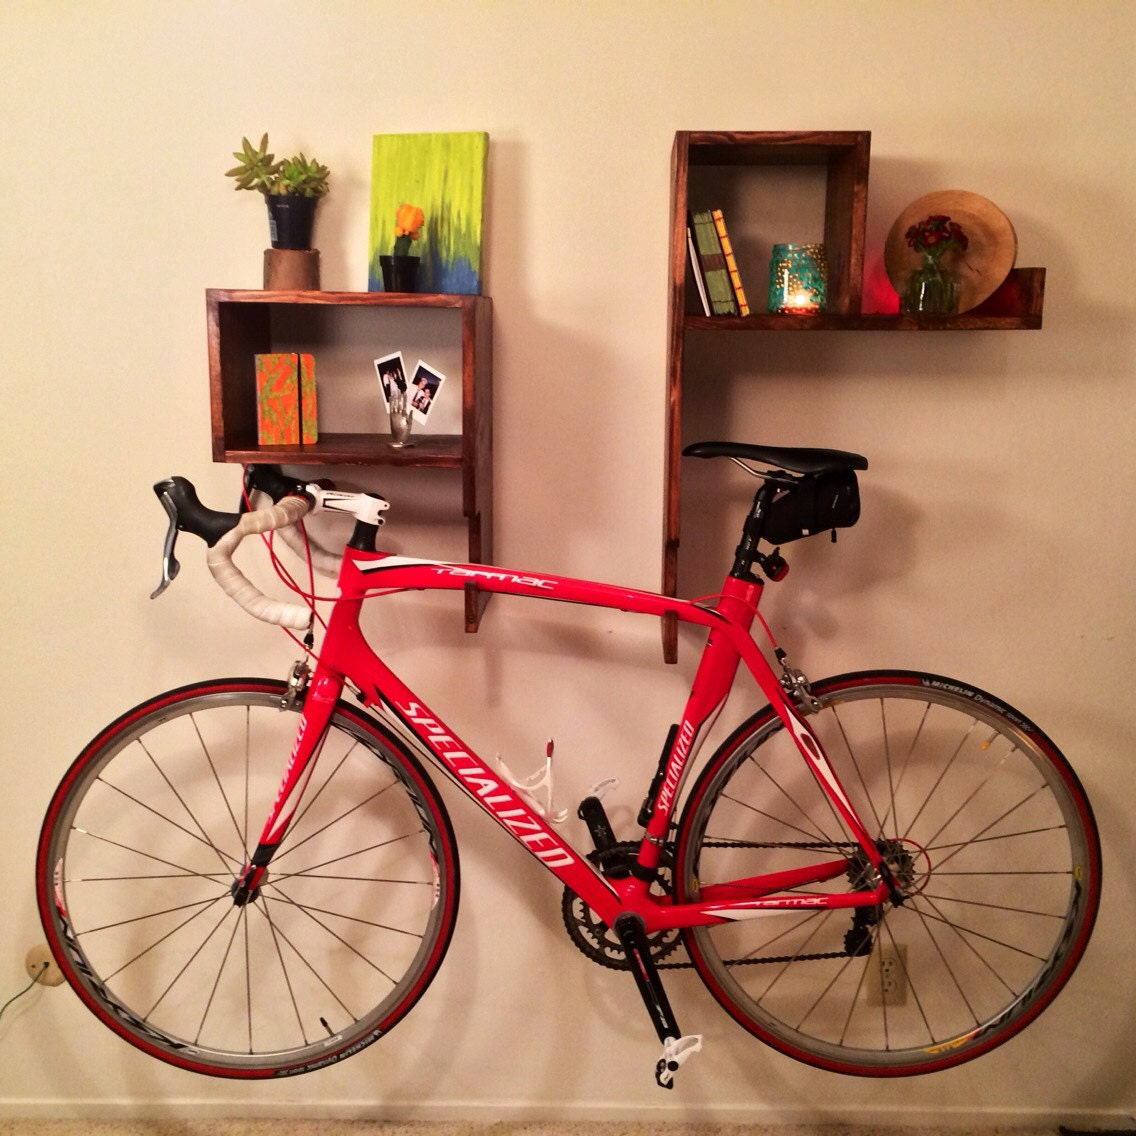 Wood bike rack on wall with shelf and cubby unique handmade Bicycle bookshelf